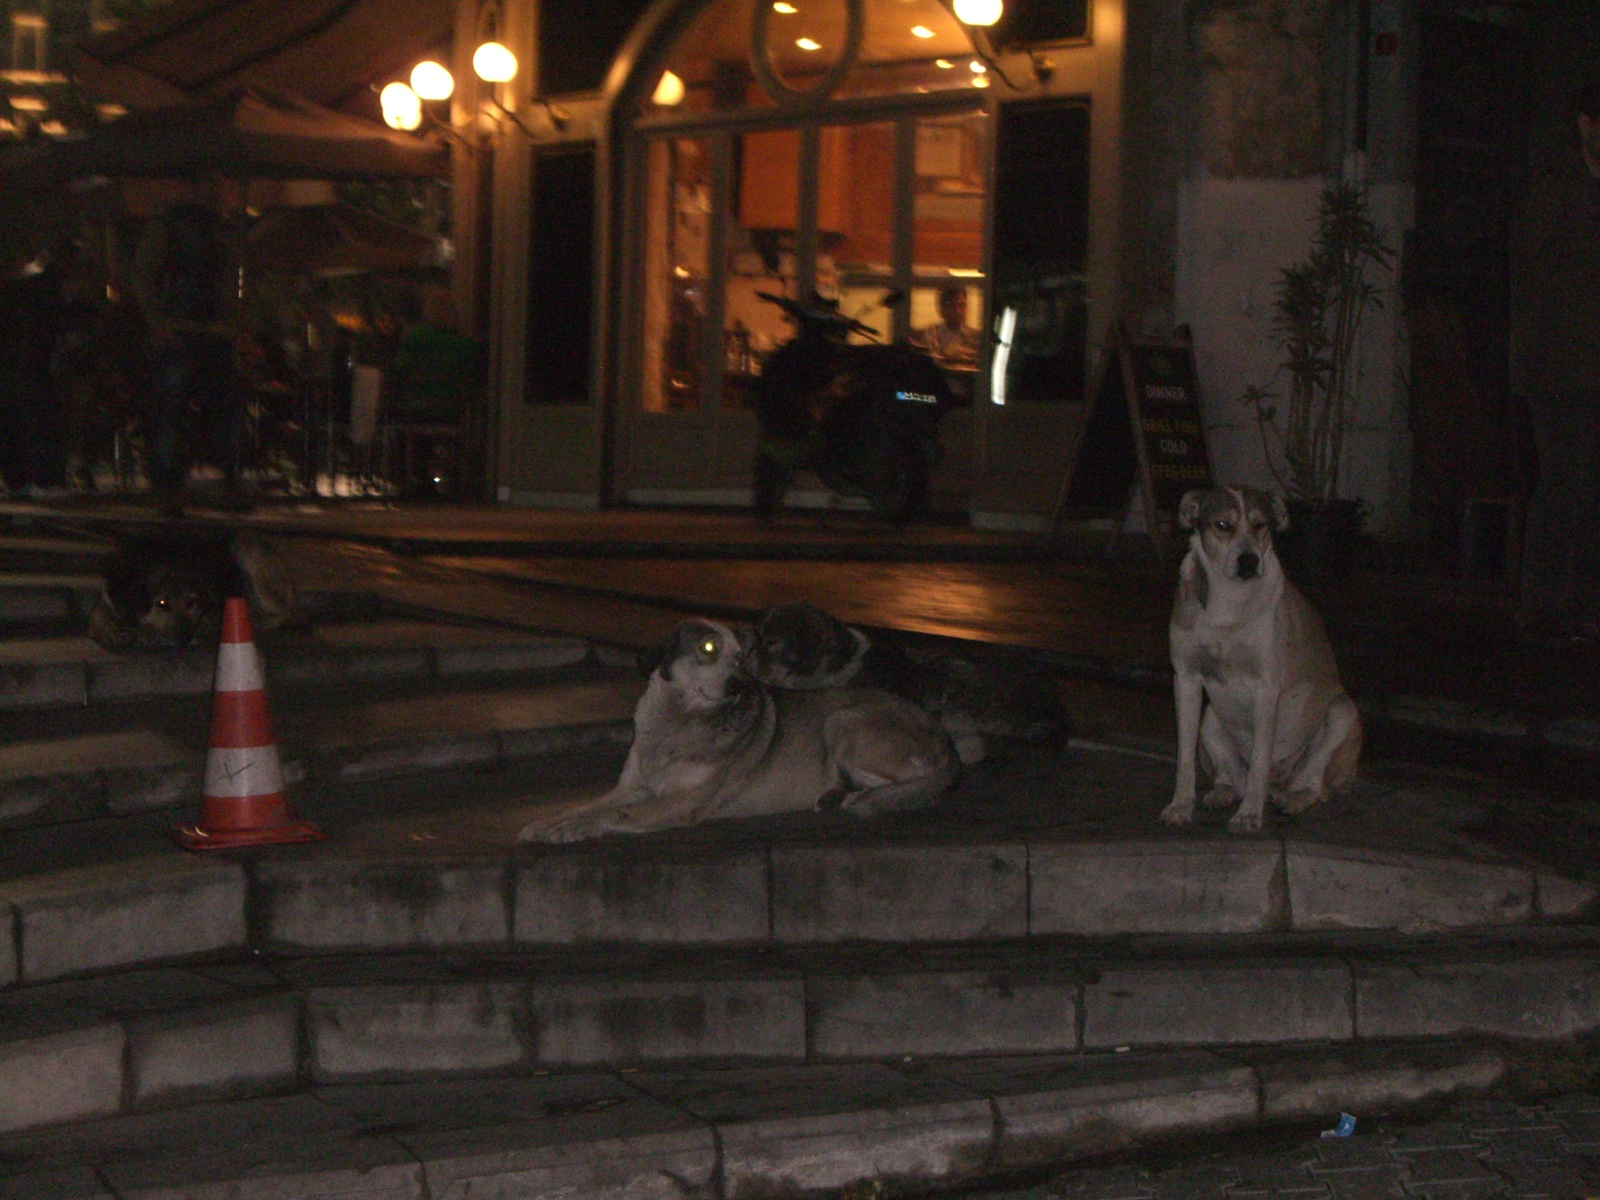 The Istanbul street dogs are very handsome, but their predicament makes me sad.